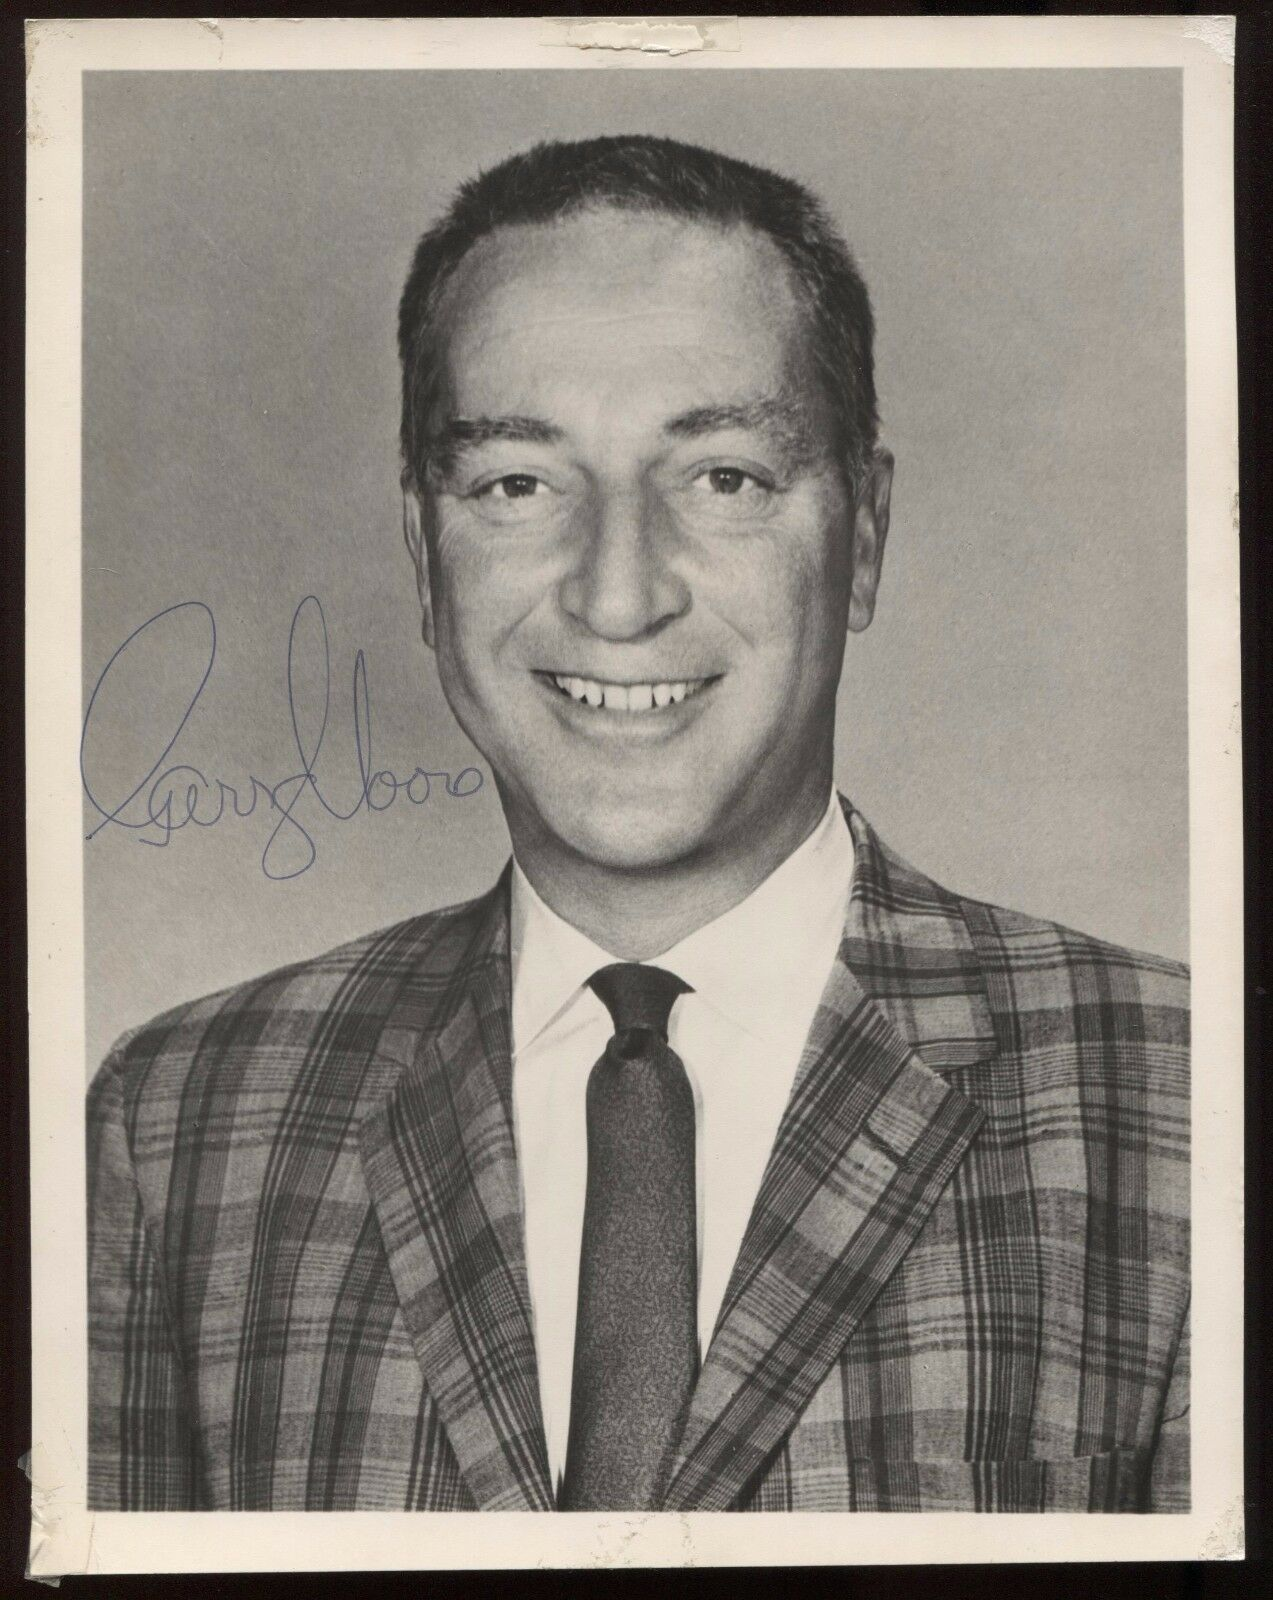 Garry moore vintage signed 7x9 inch photo autographed early career from 1960's